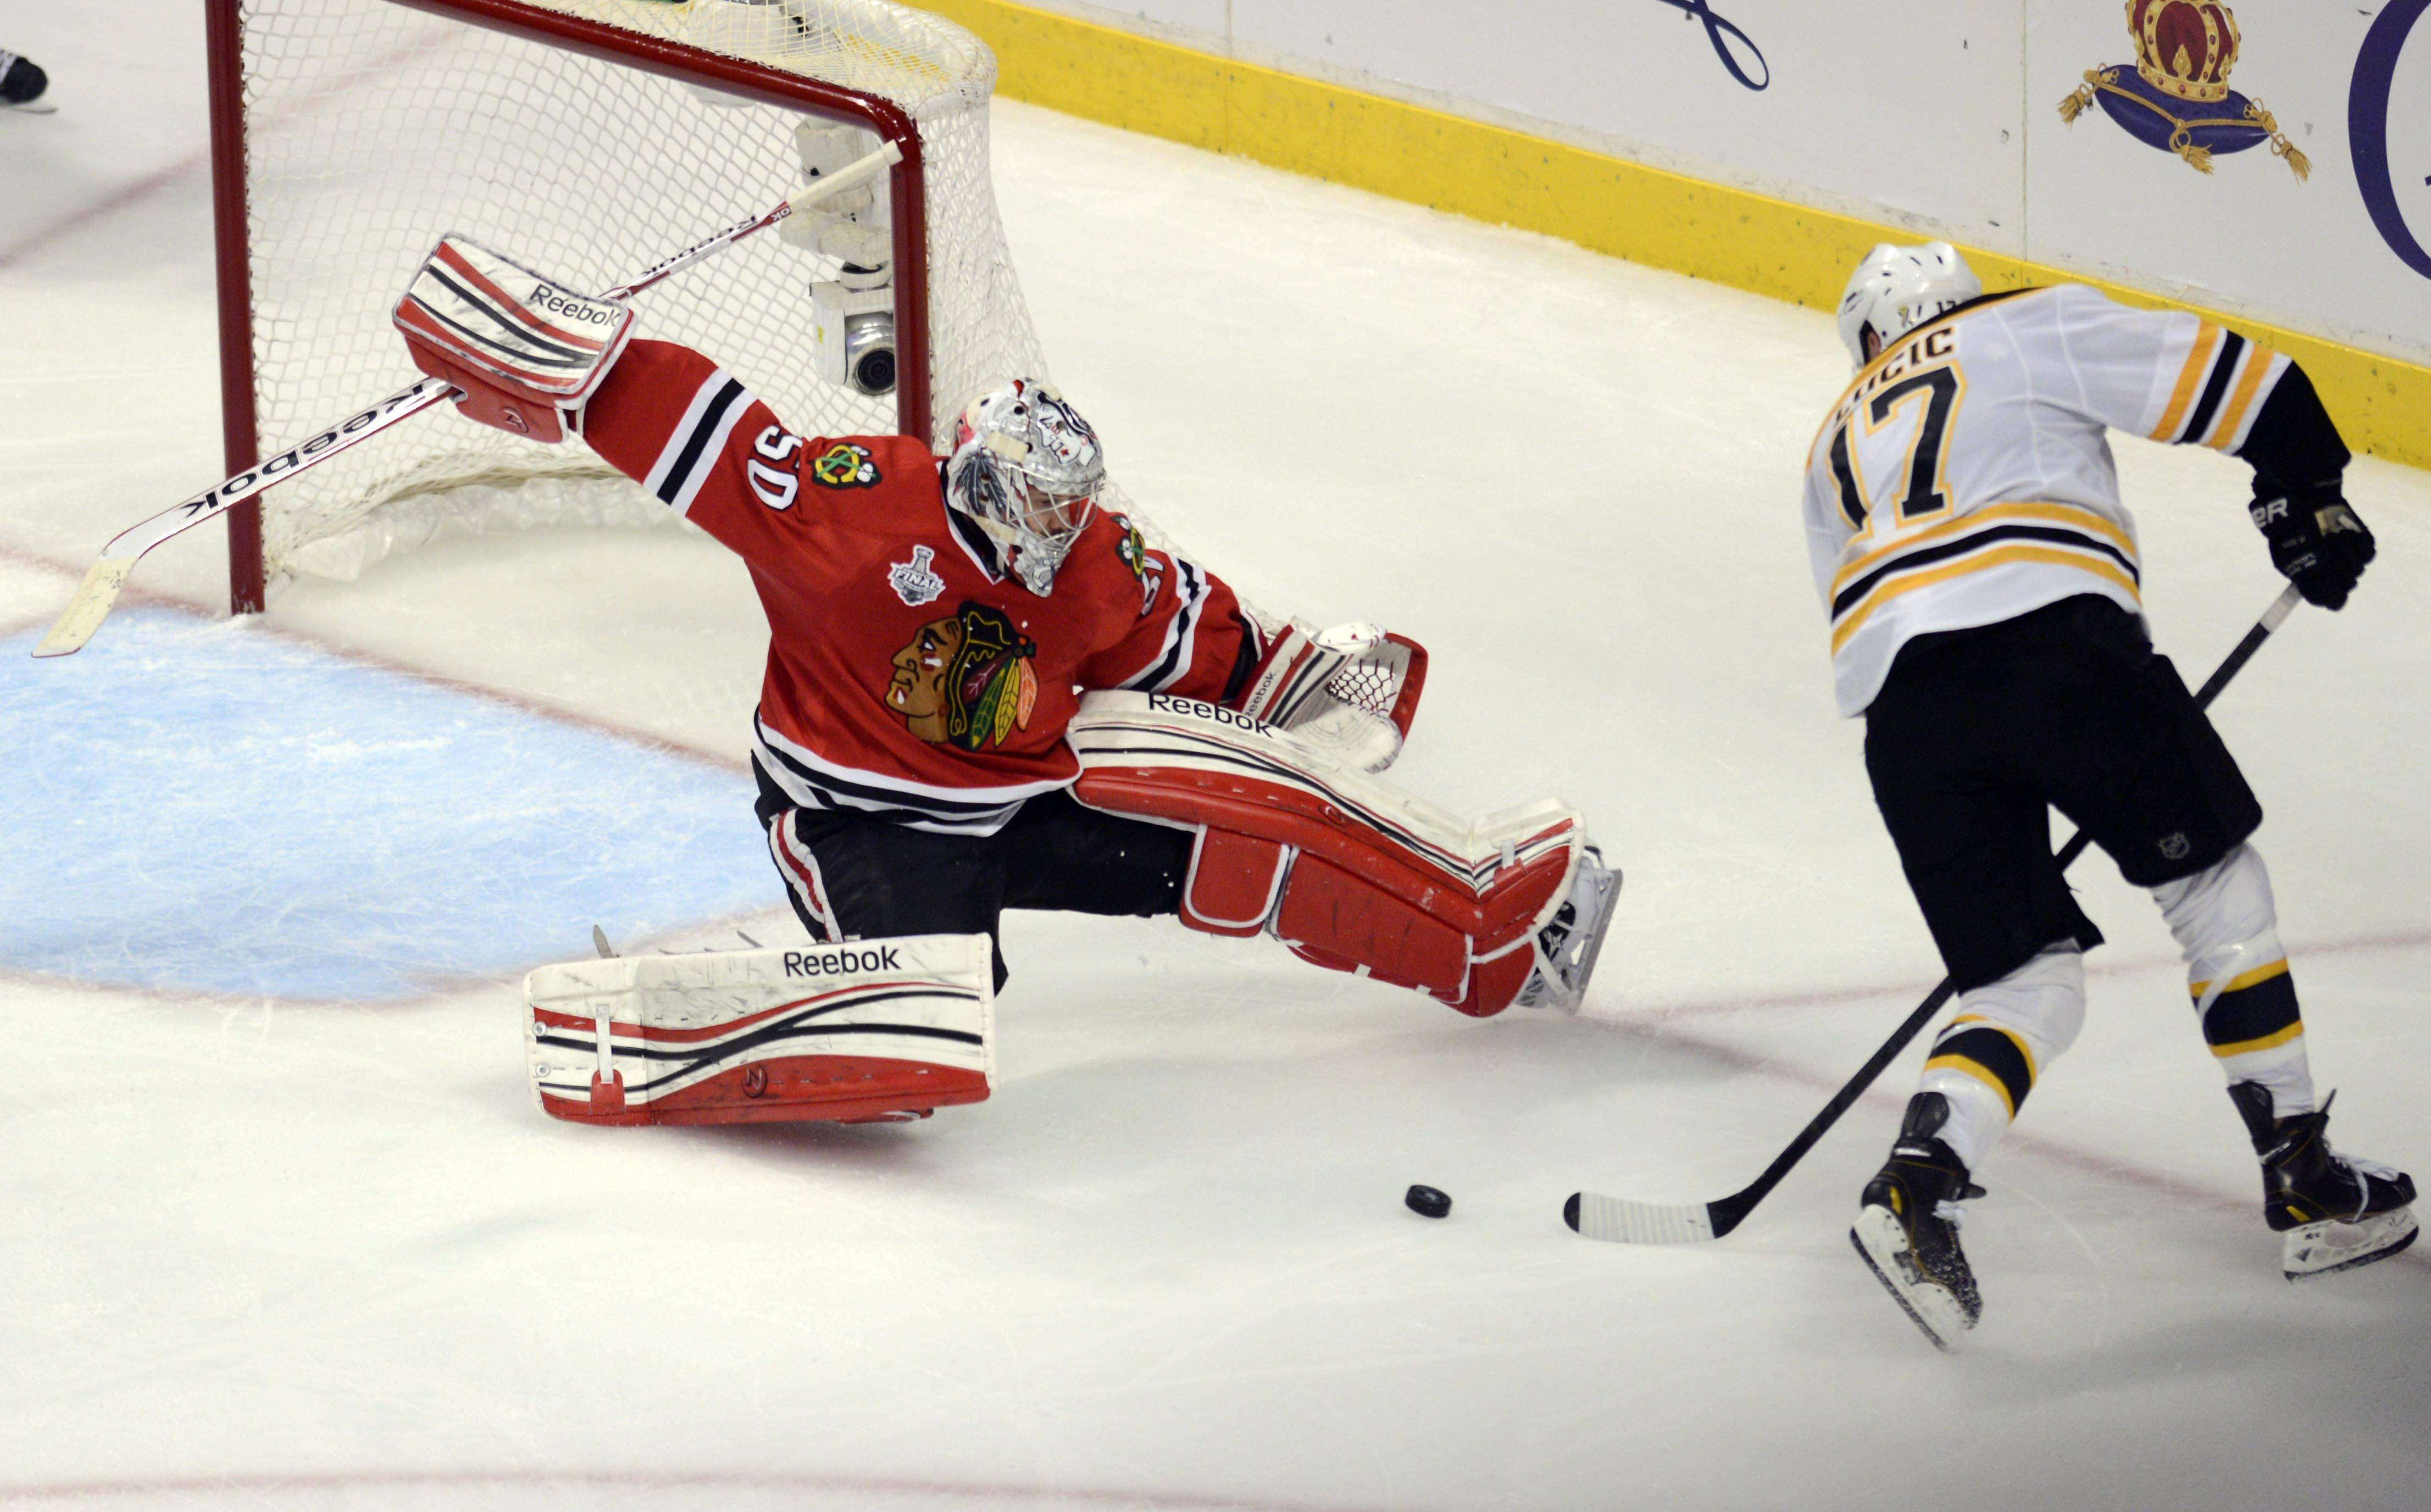 Chicago Blackhawks goalie Corey Crawford blocks a shot by Boston Bruins left wing Milan Lucic late in the third period during Game 1 of the Stanley Cup Finals Wednesday at the Untied Center in Chicago.